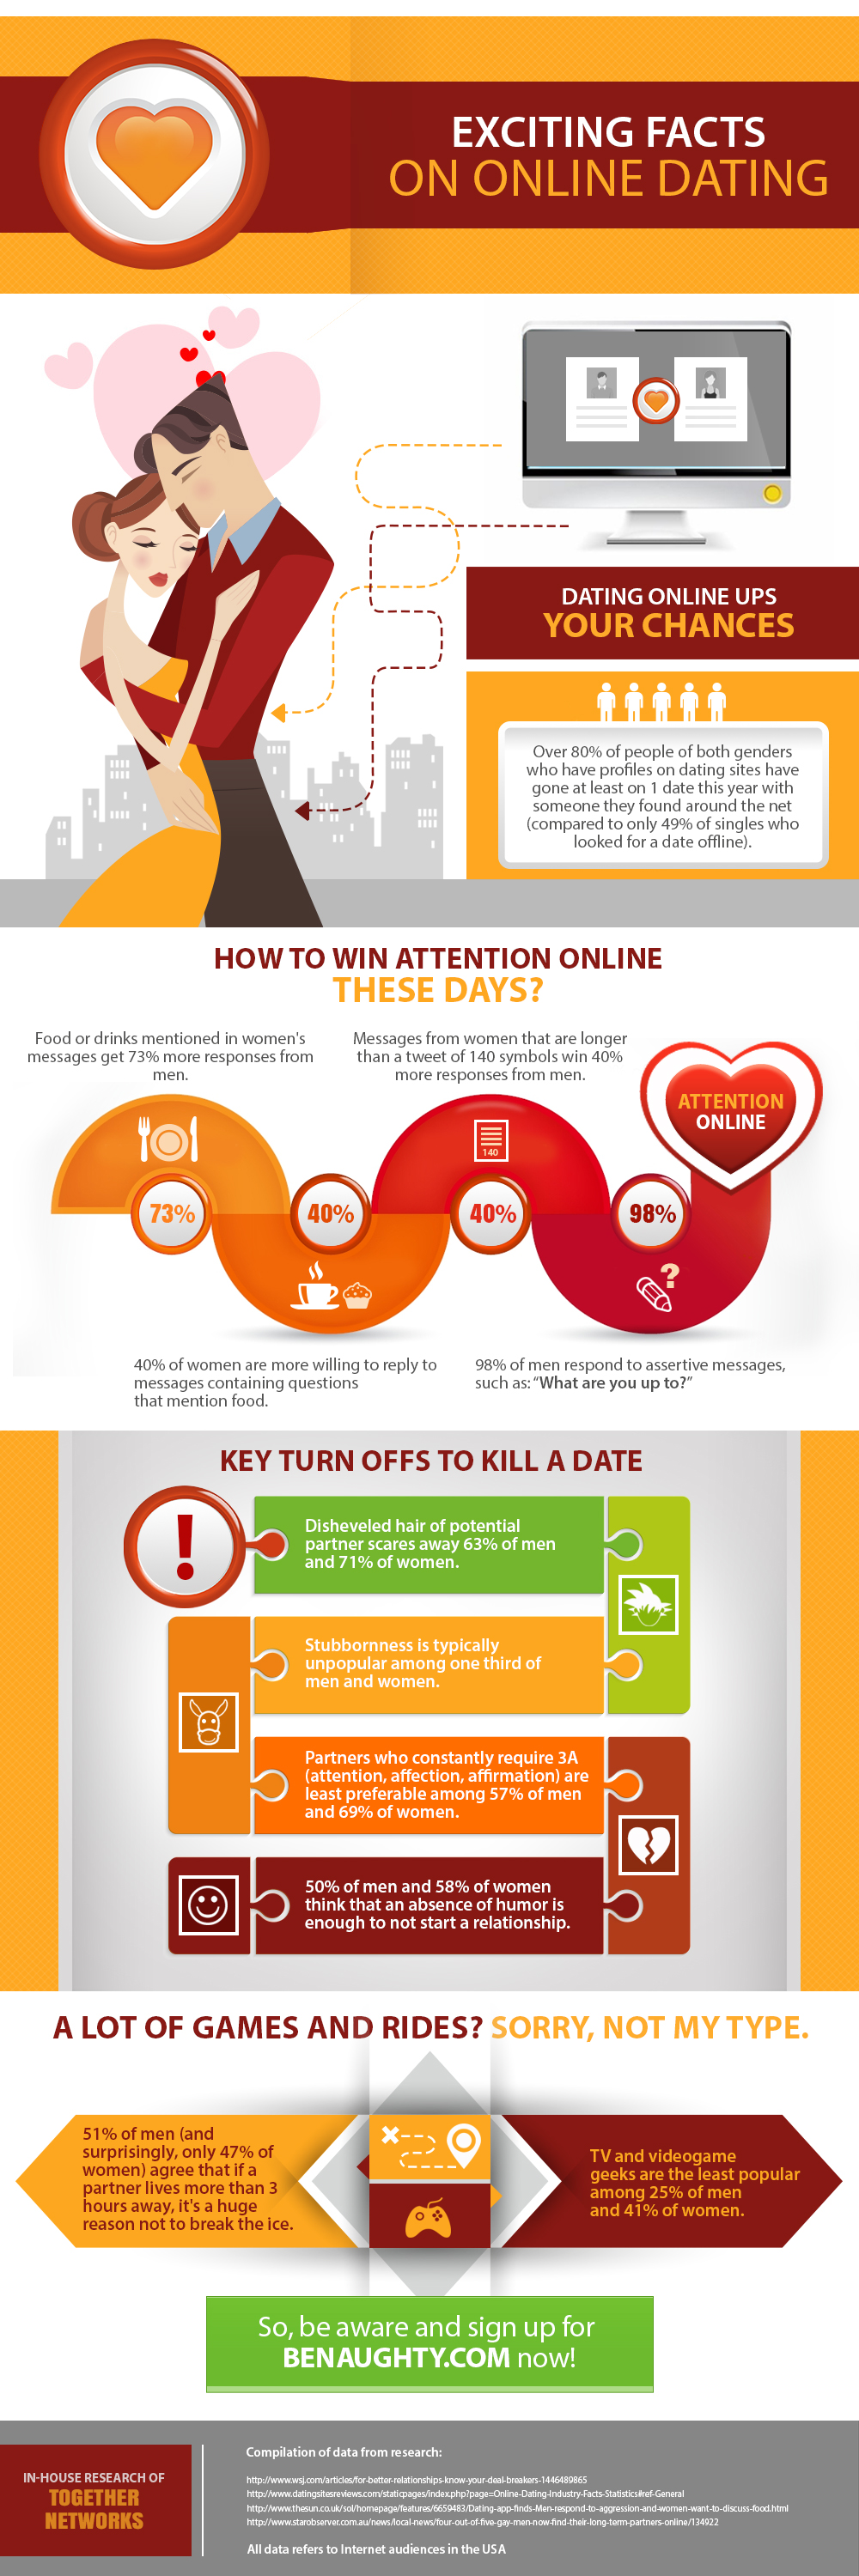 Exciting Facts on Online Dating by Benaughty